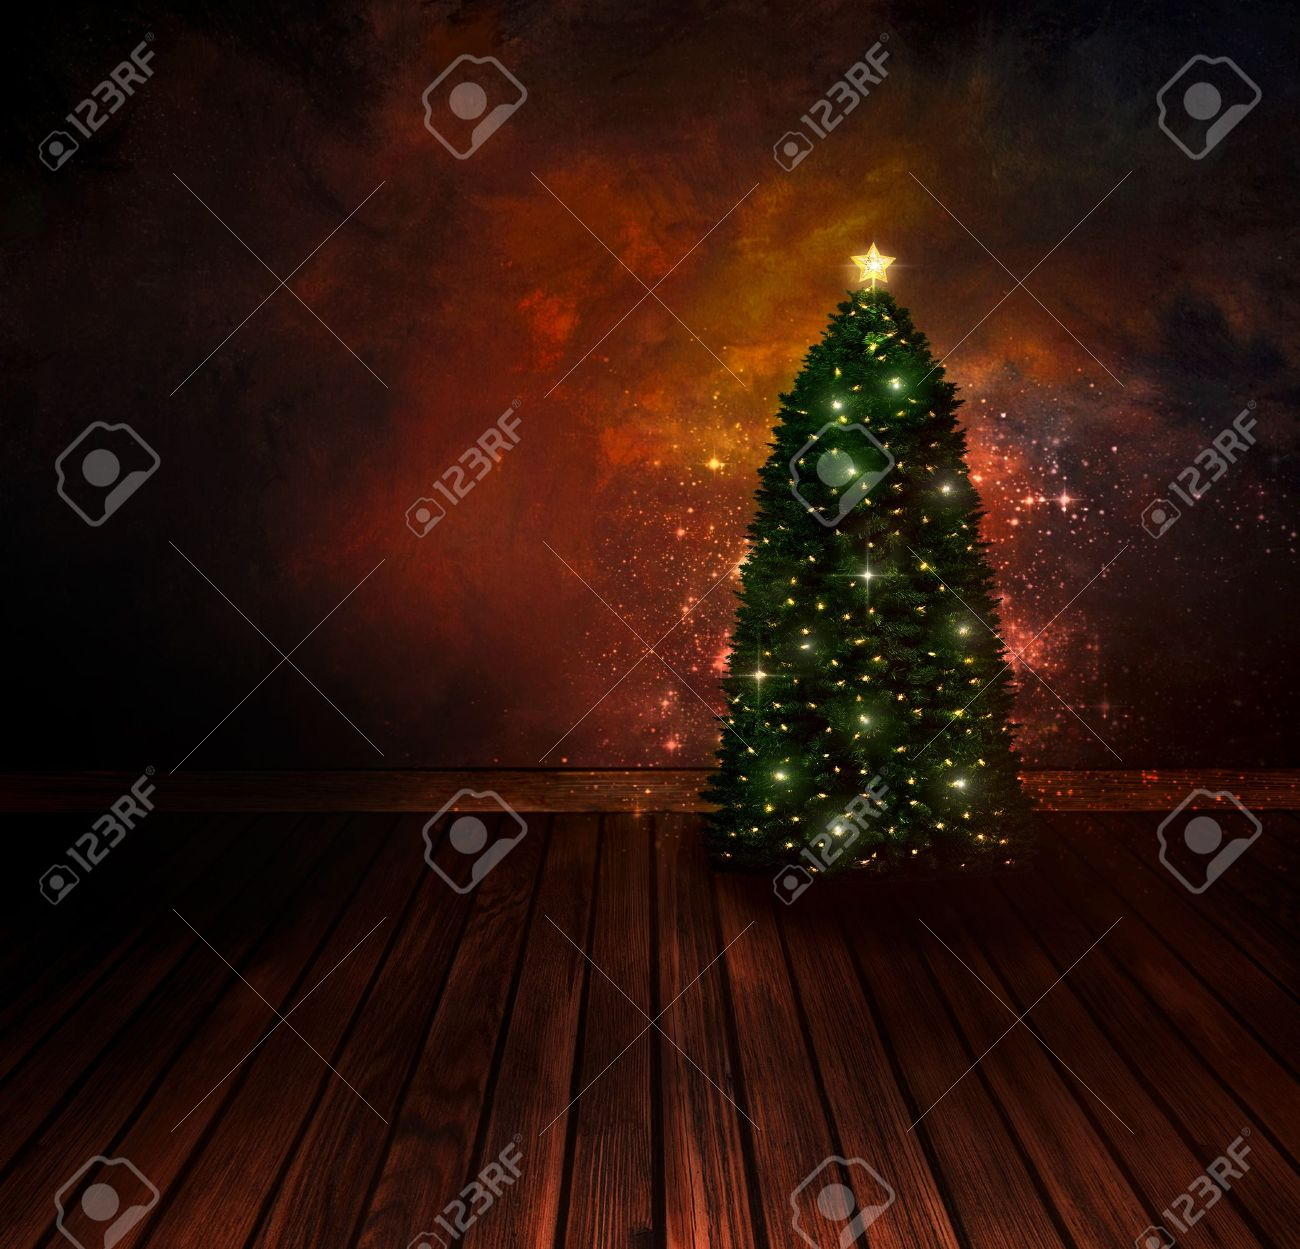 Chritmas design - Night Christmas tree. Background with Glitter Xmas tree in room with art abstract painting. Vintage holiday card with copyspace. Stock Photo - 15618006